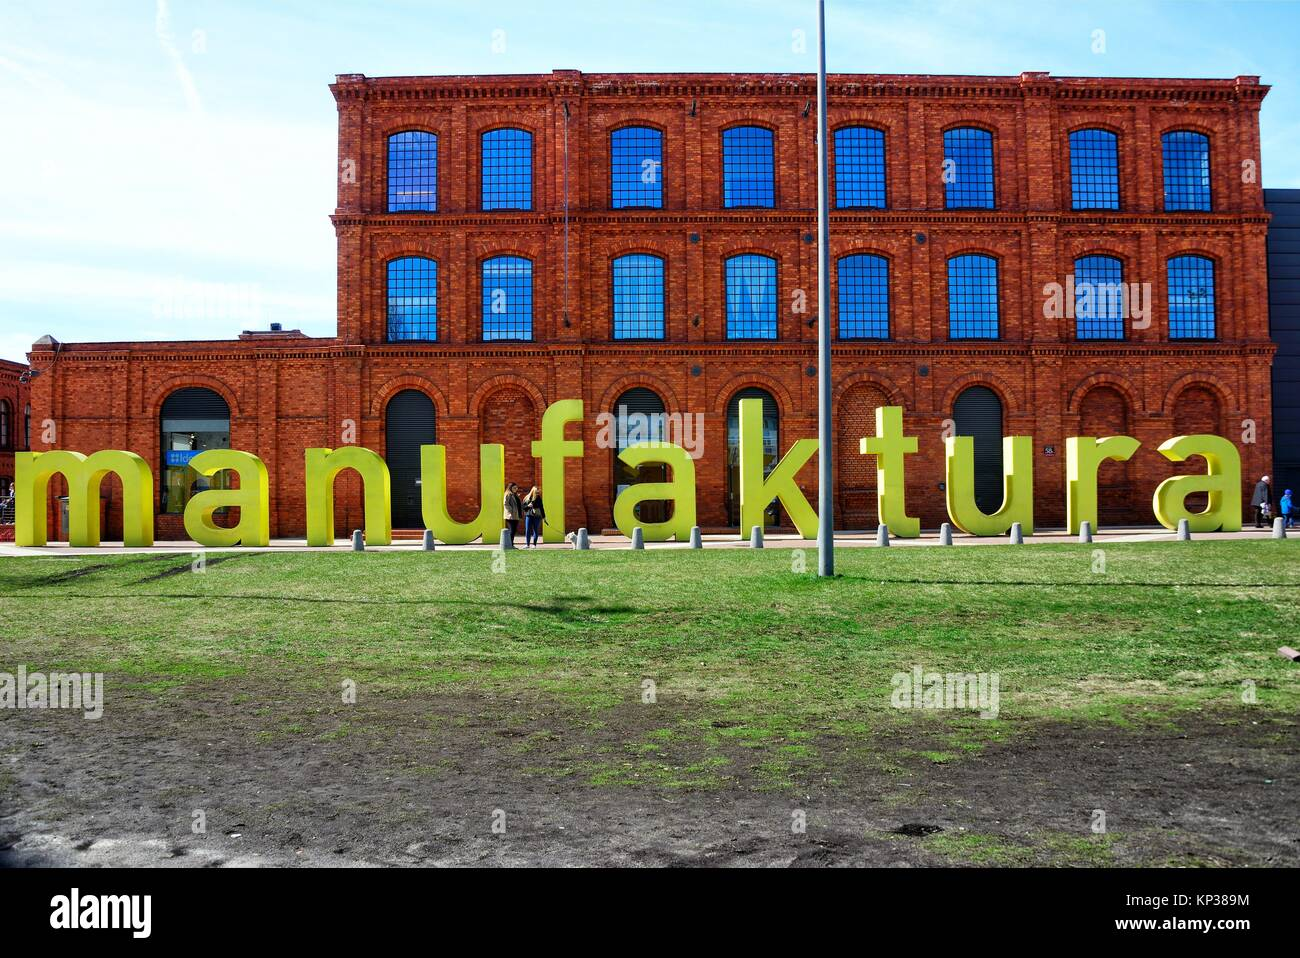 Former, old, historic textile factory after renovation, built in years 1872 - 1892, designed by Hilary Majewski - Stock Image